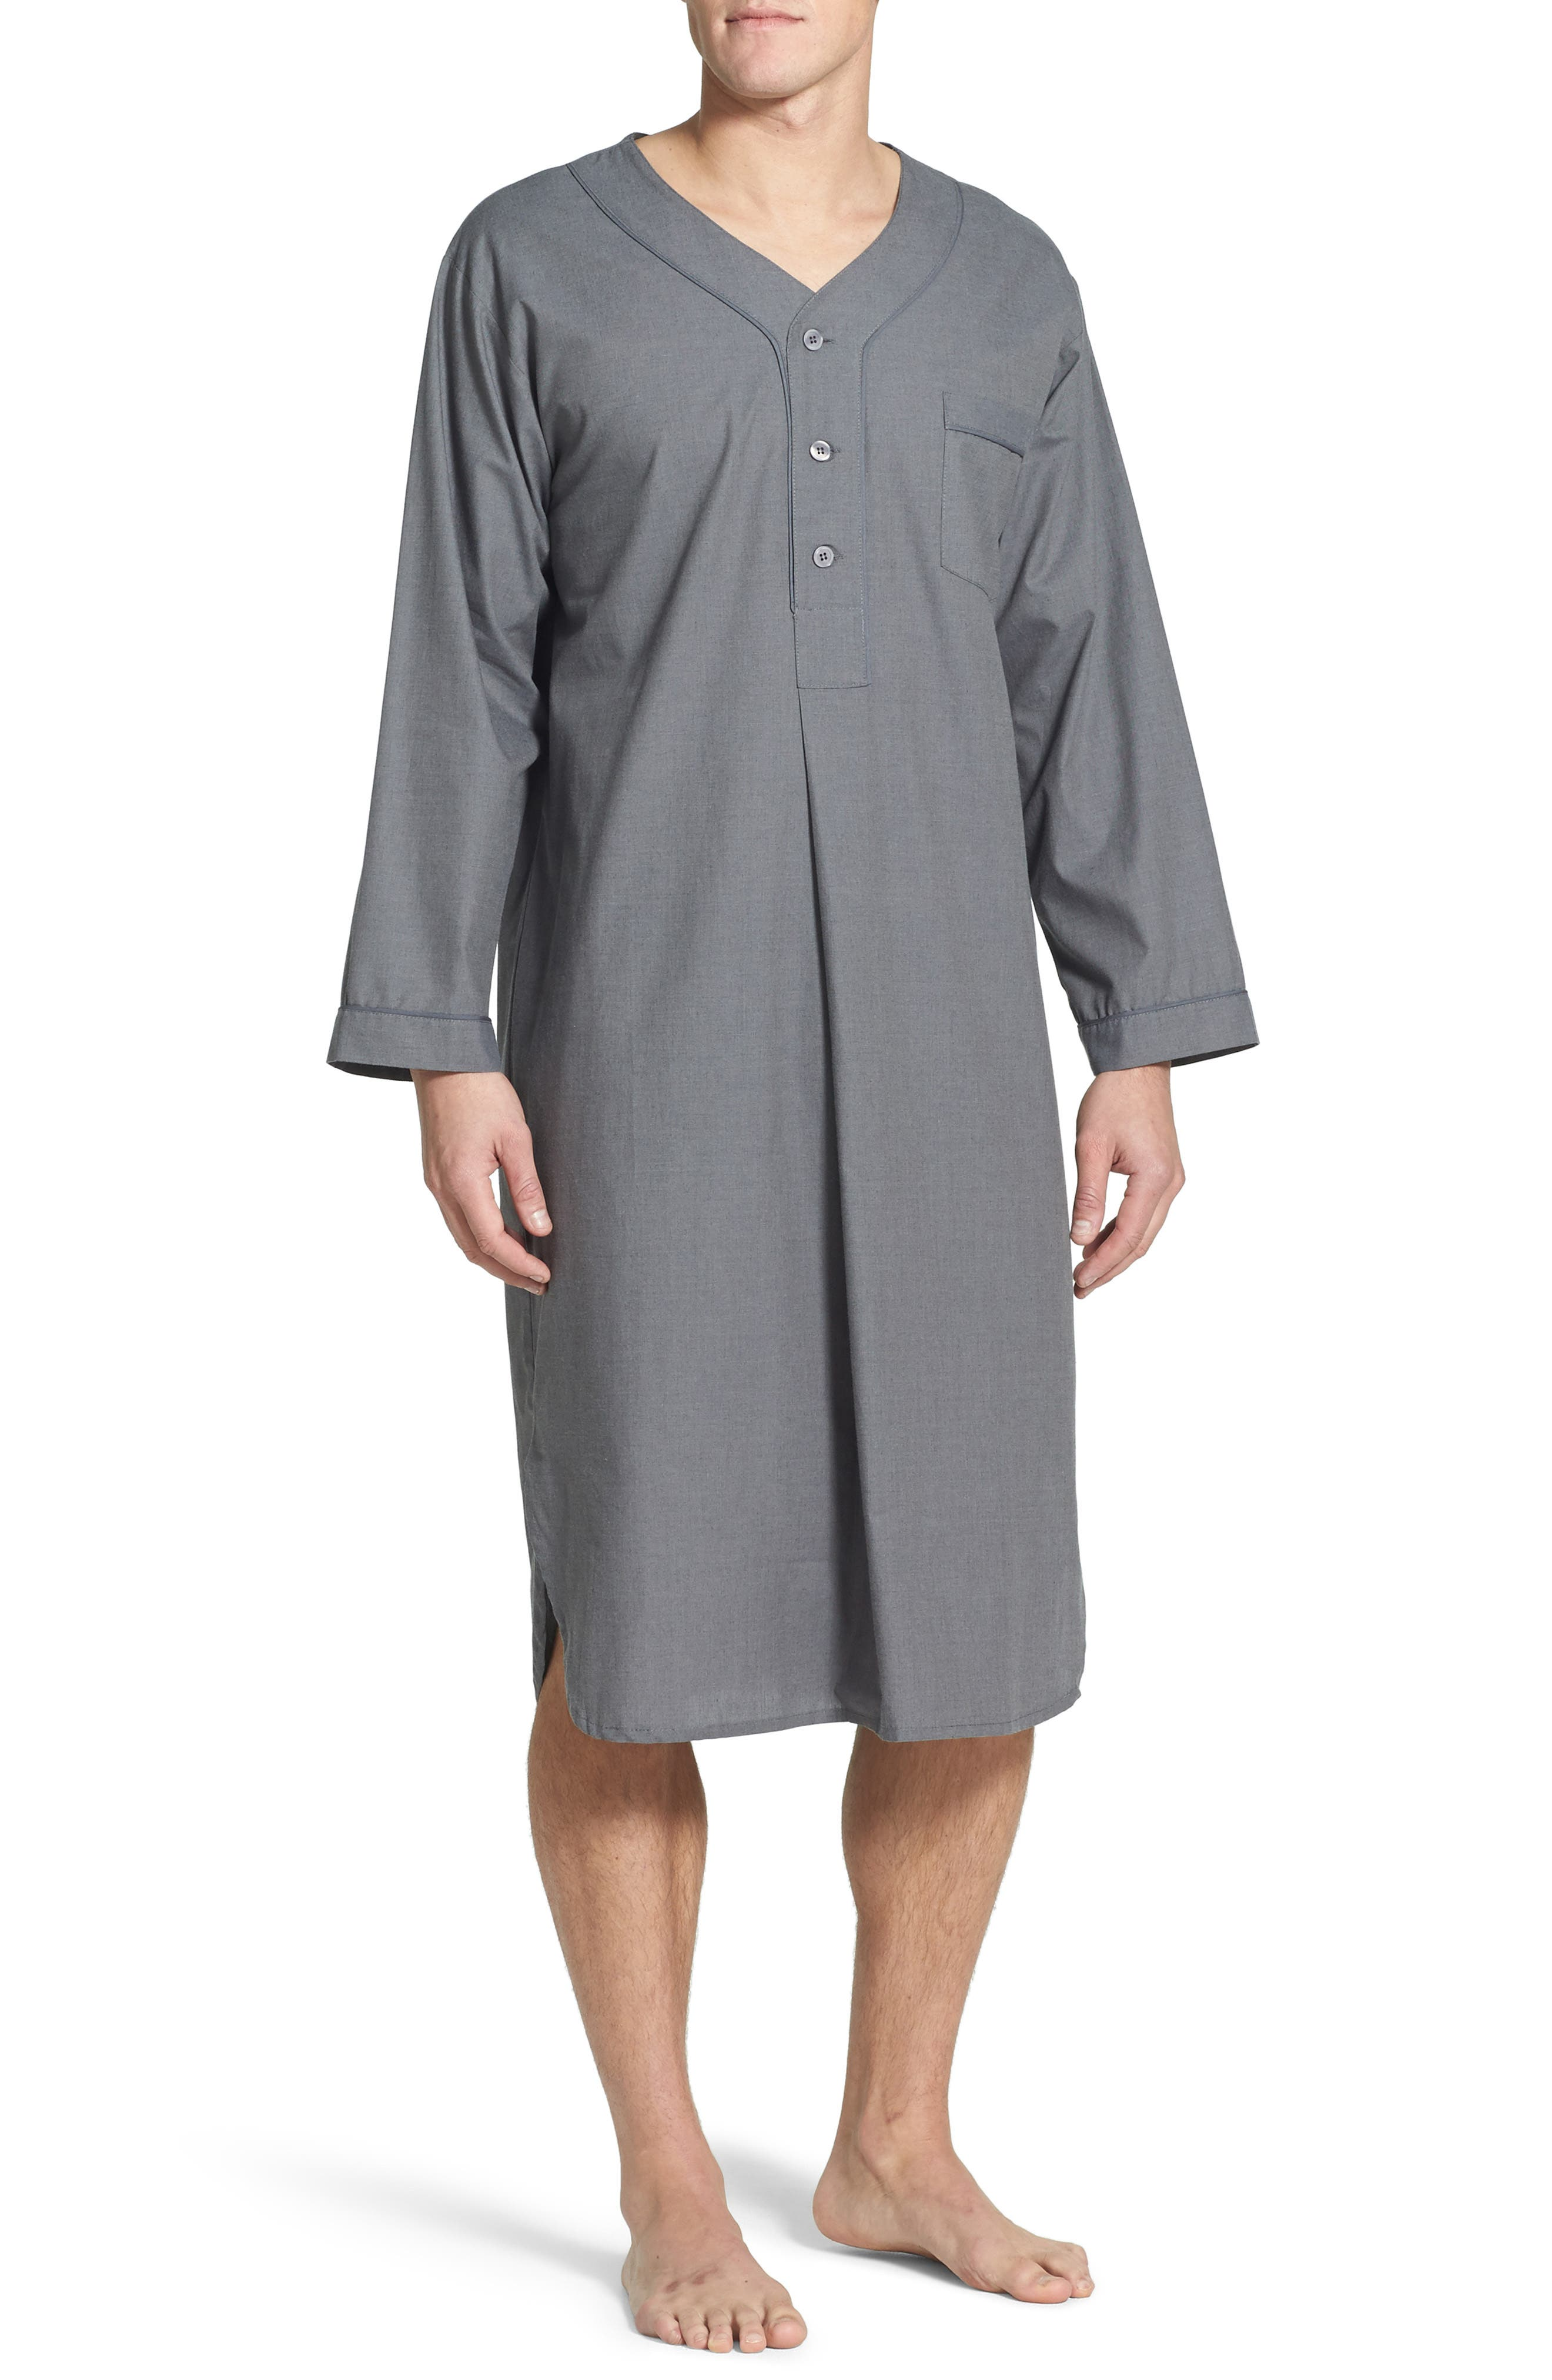 1920s Men's Clothing Mens Majestic International Cotton Nightshirt Size SmallMedium - Grey $60.00 AT vintagedancer.com